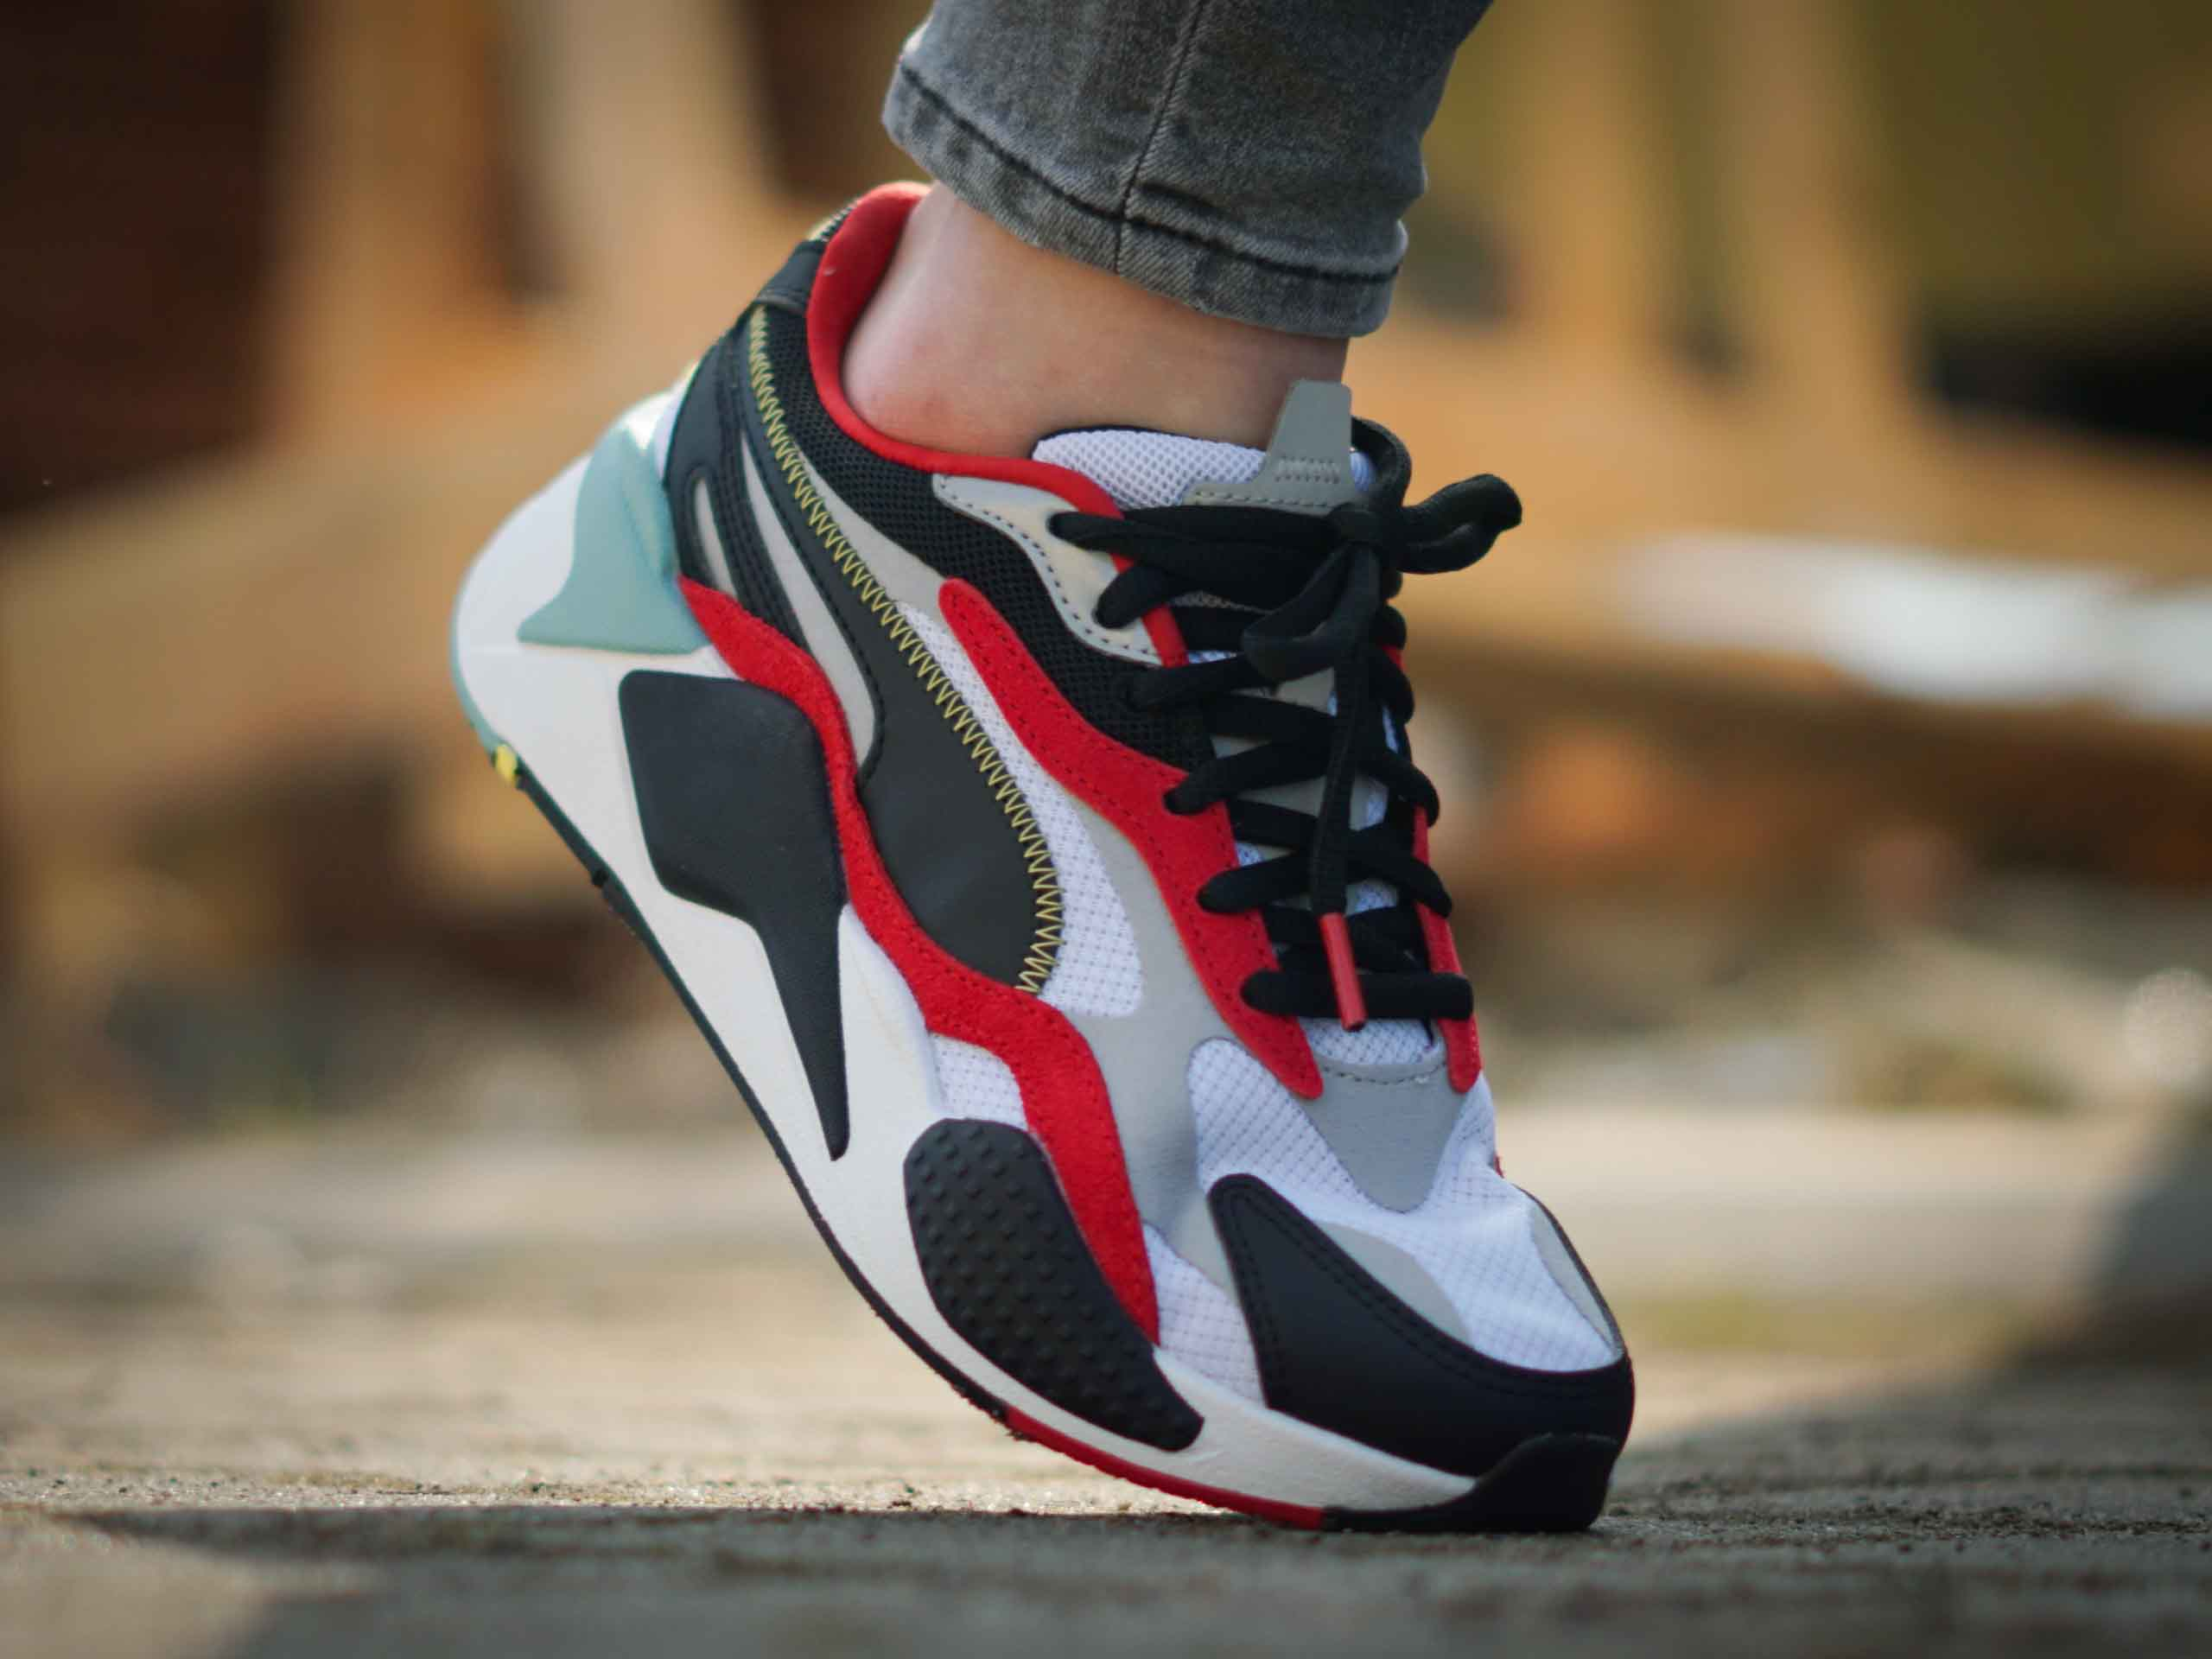 Puma - RS-X3 Puzzle 371570-27 - Sneakers - White / Red / Black ...